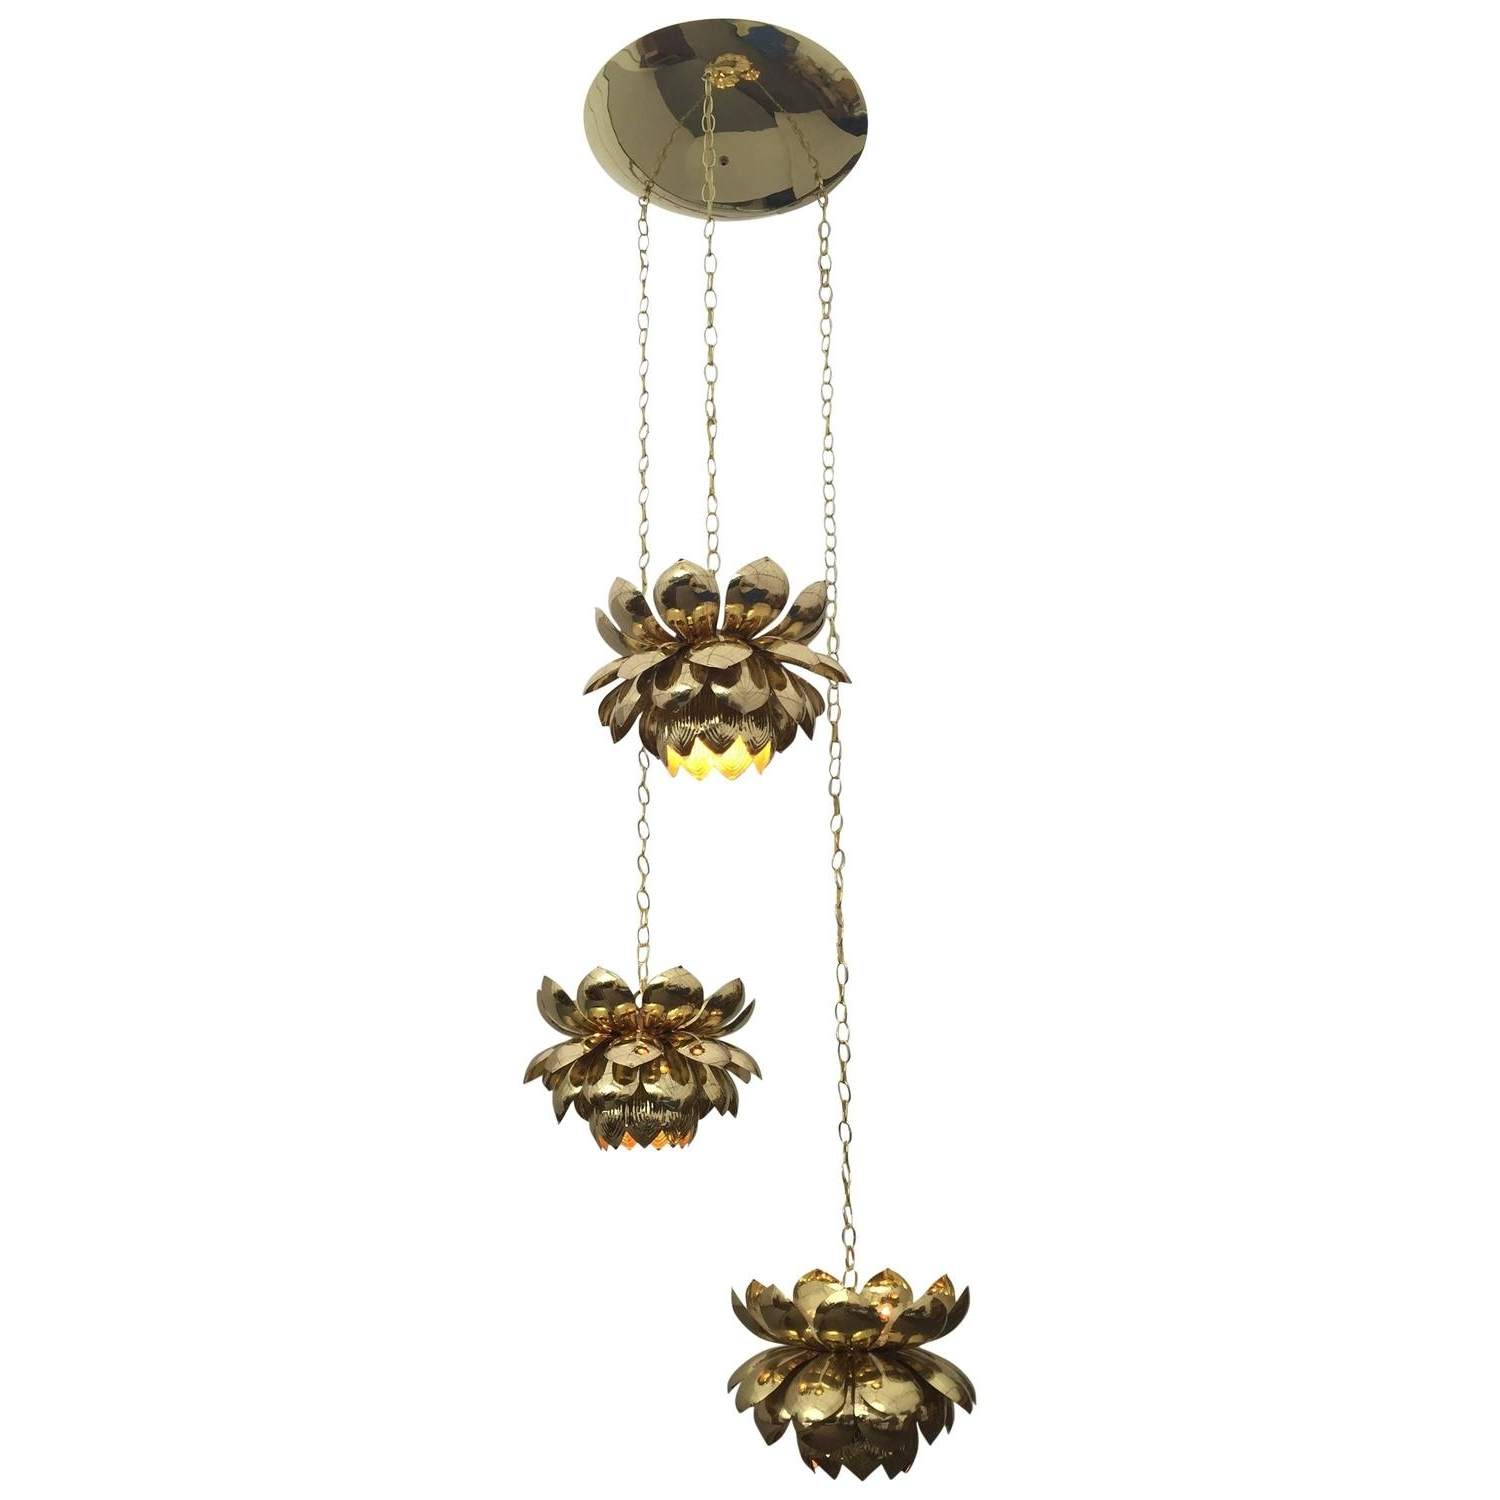 Massive Feldman Brass Chandelier With Large Lotus Pendants For Sale Inside Widely Used Large Brass Chandelier (View 15 of 20)